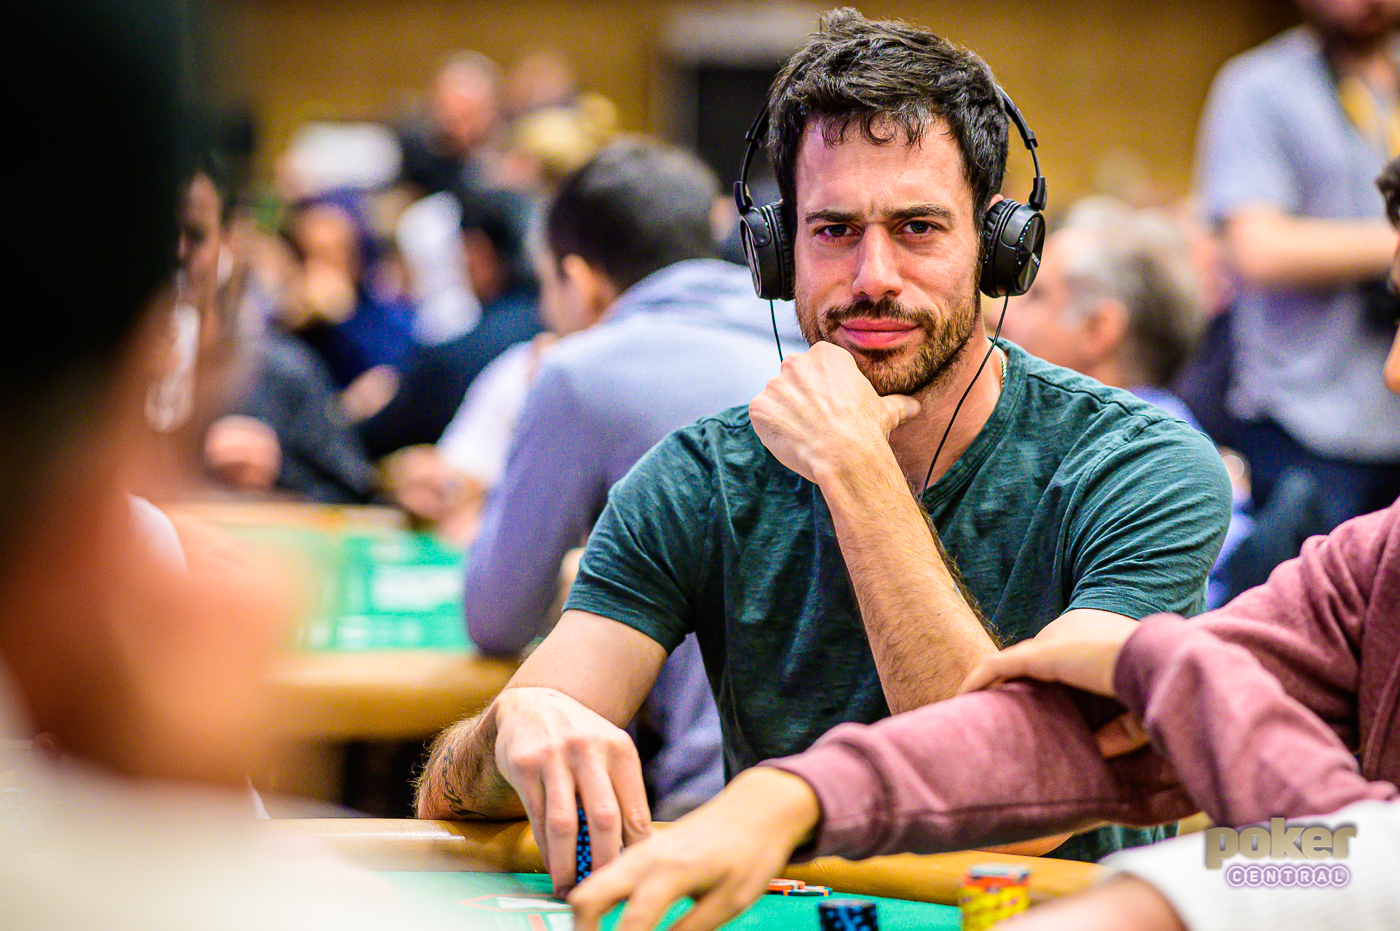 Nick Schulman joins Brent Hanks and Remko Rinkema on the Poker Central Podcast.